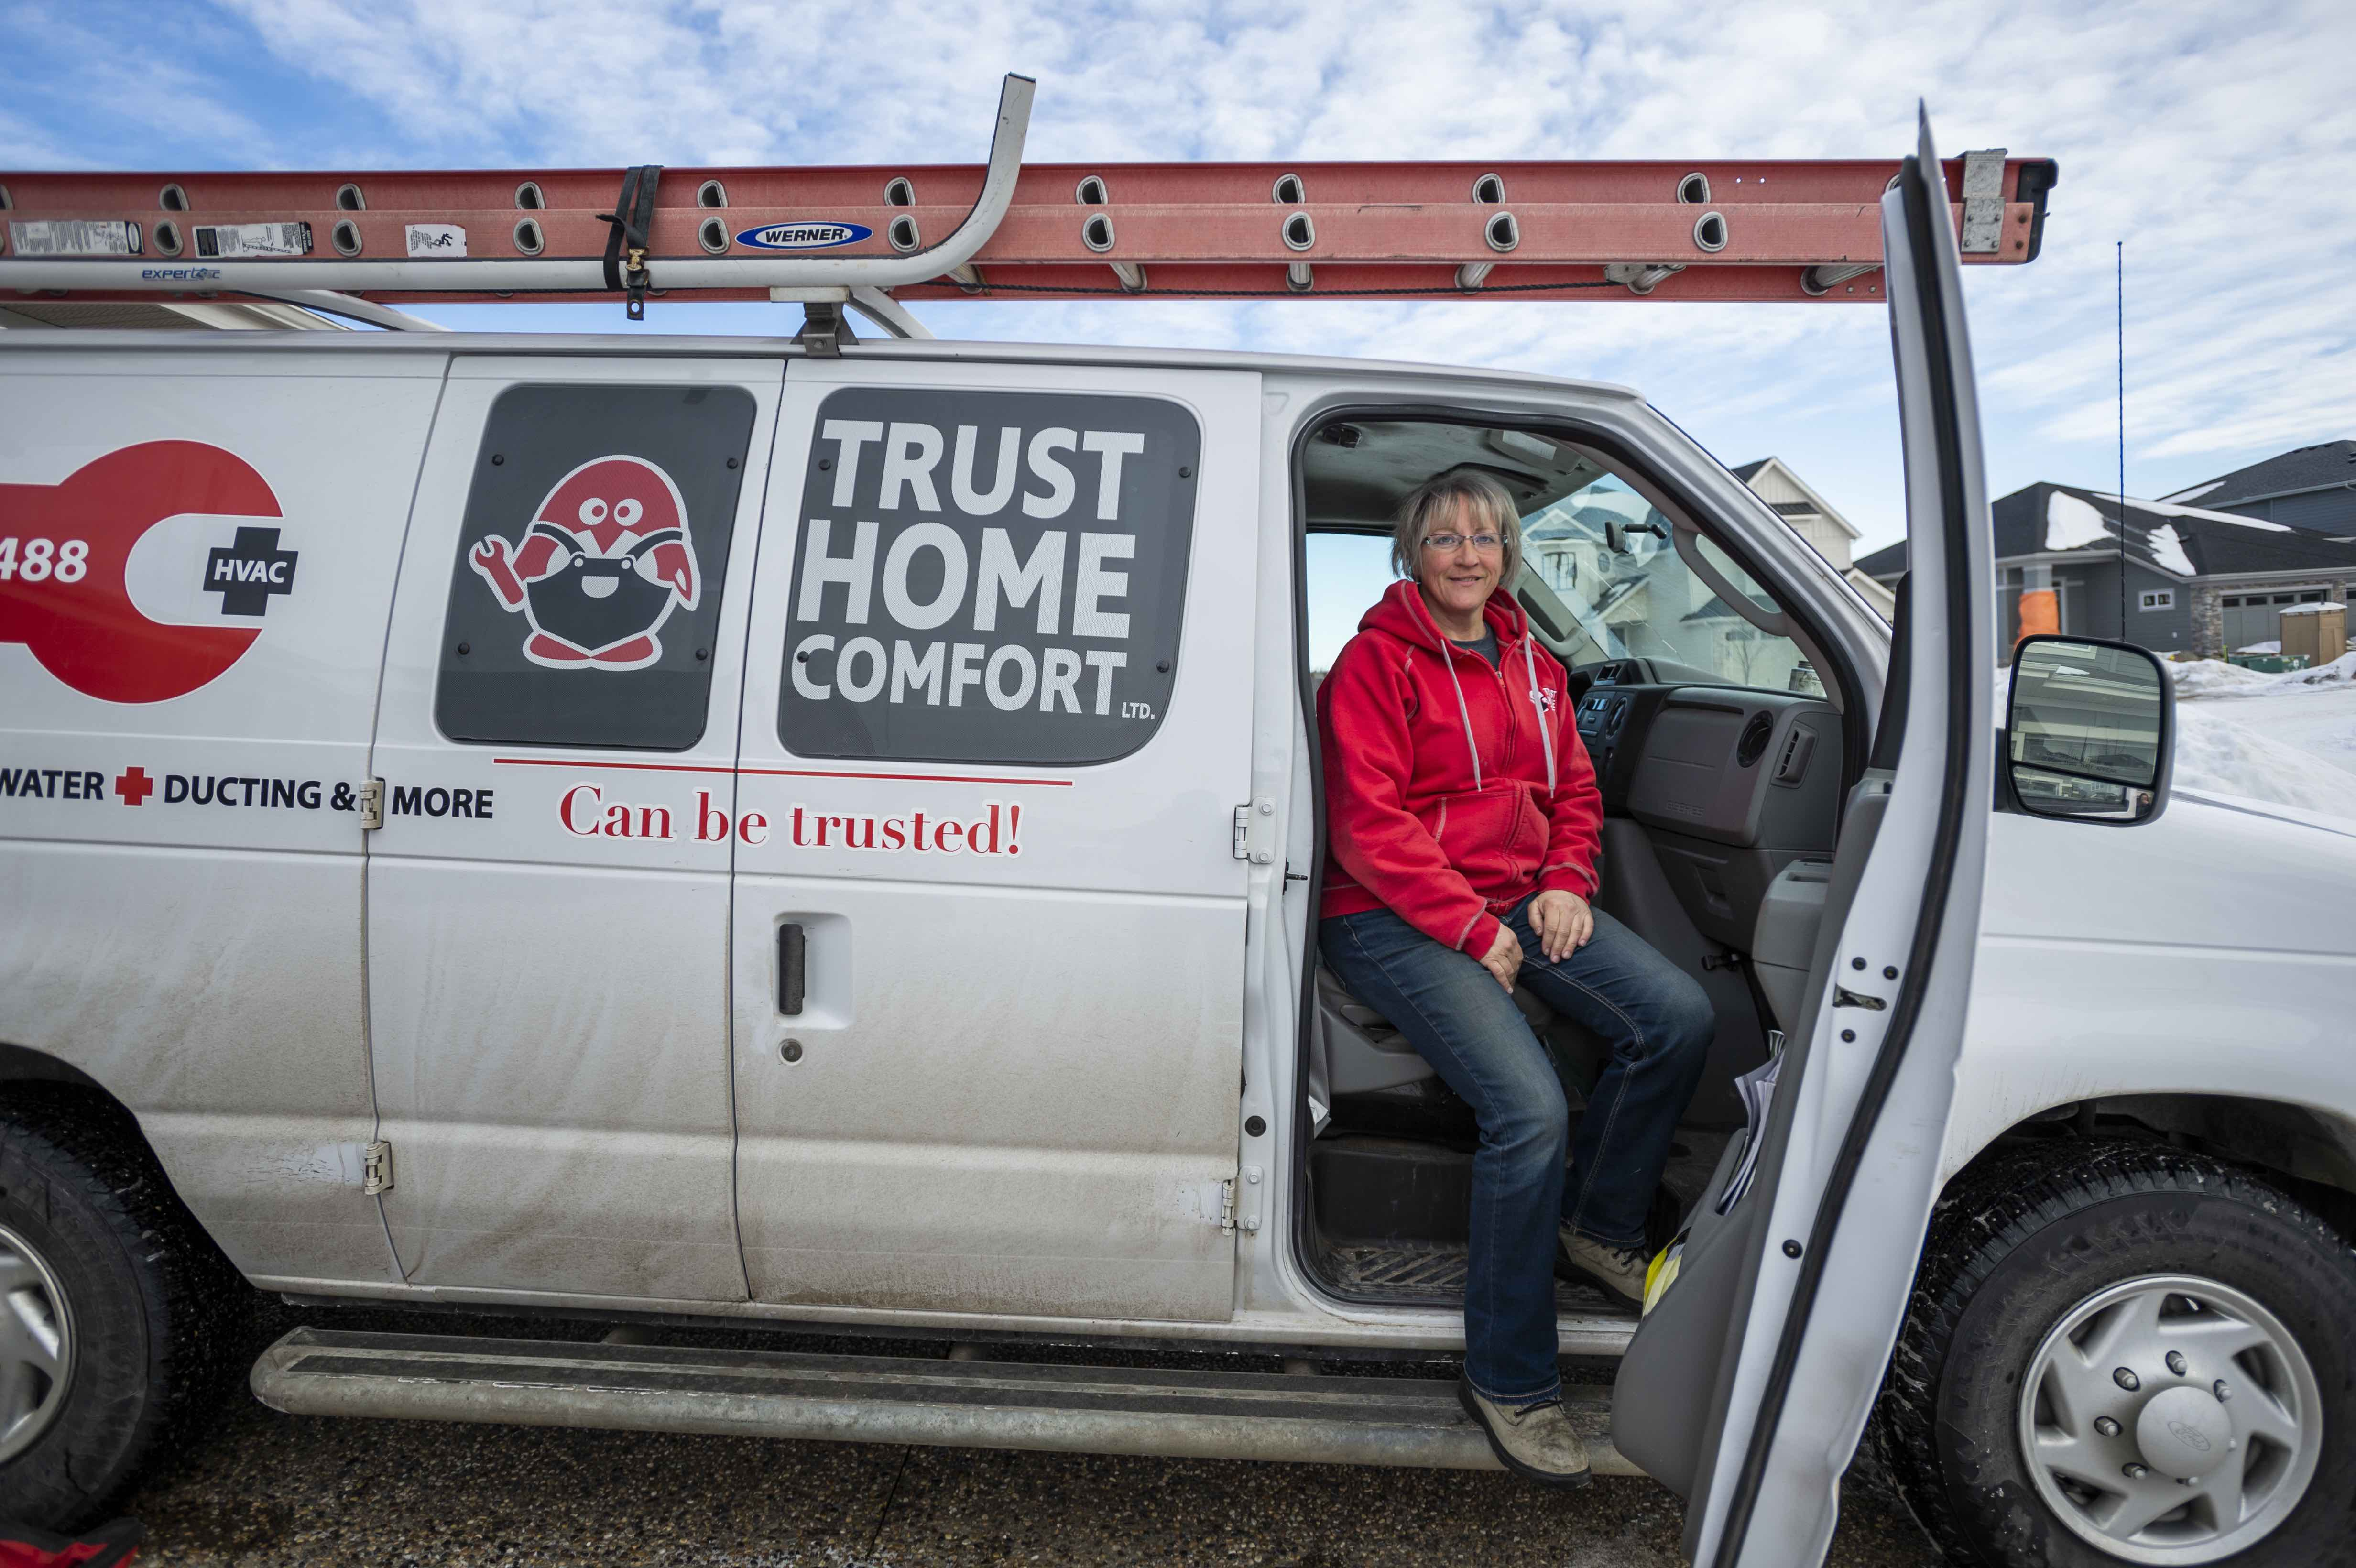 How to build a successful home service business